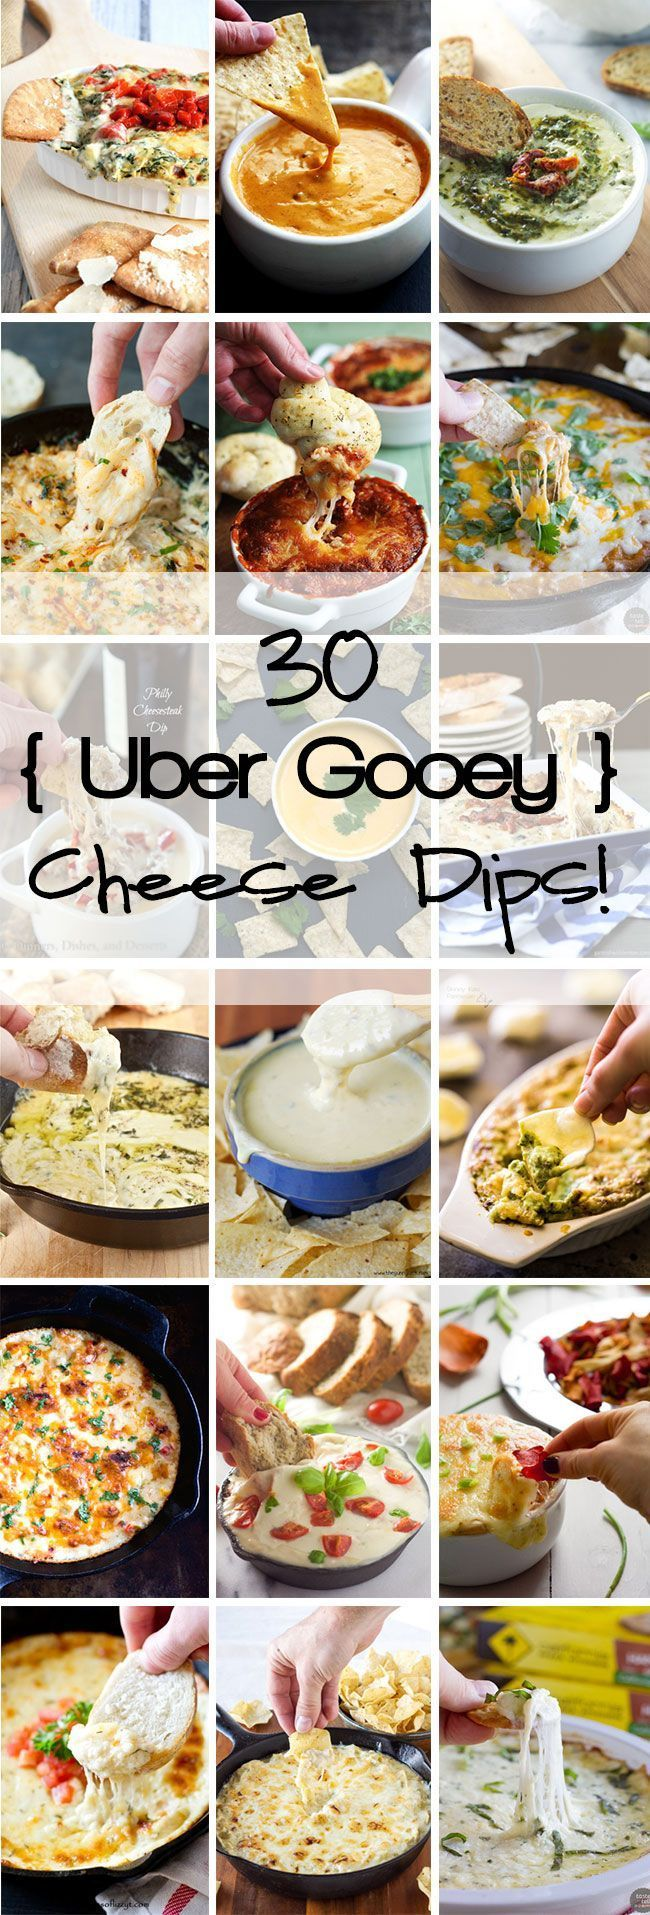 30 Uber Gooey Cheese Dips! Cheese is my love language